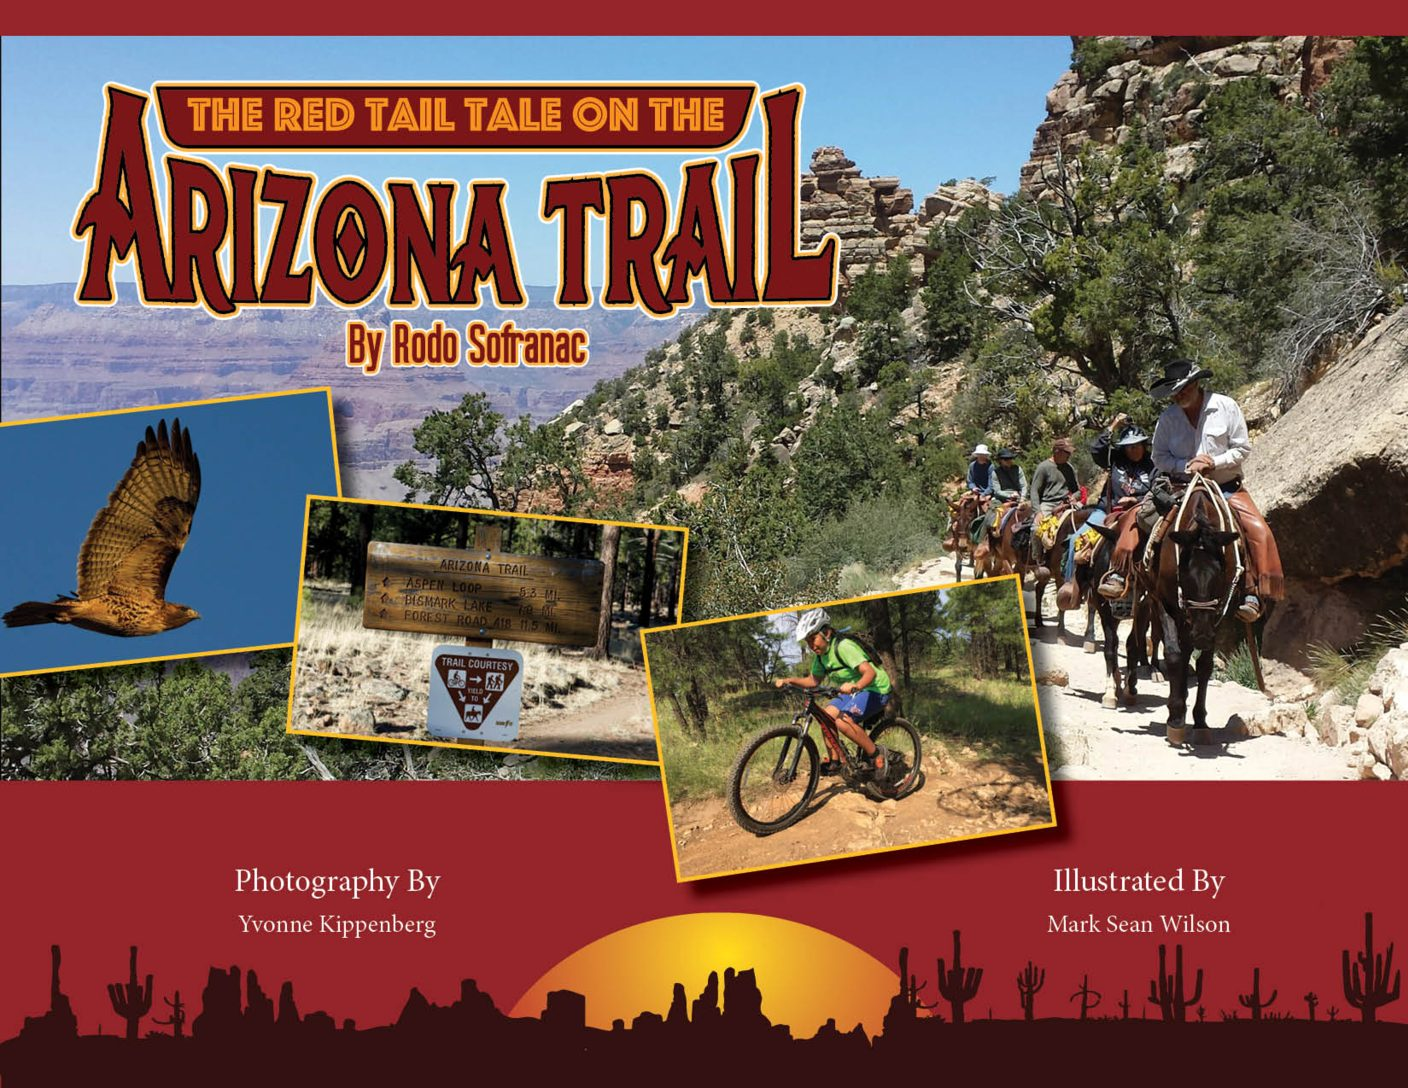 The Red Tail Tale on the Arizona Trail